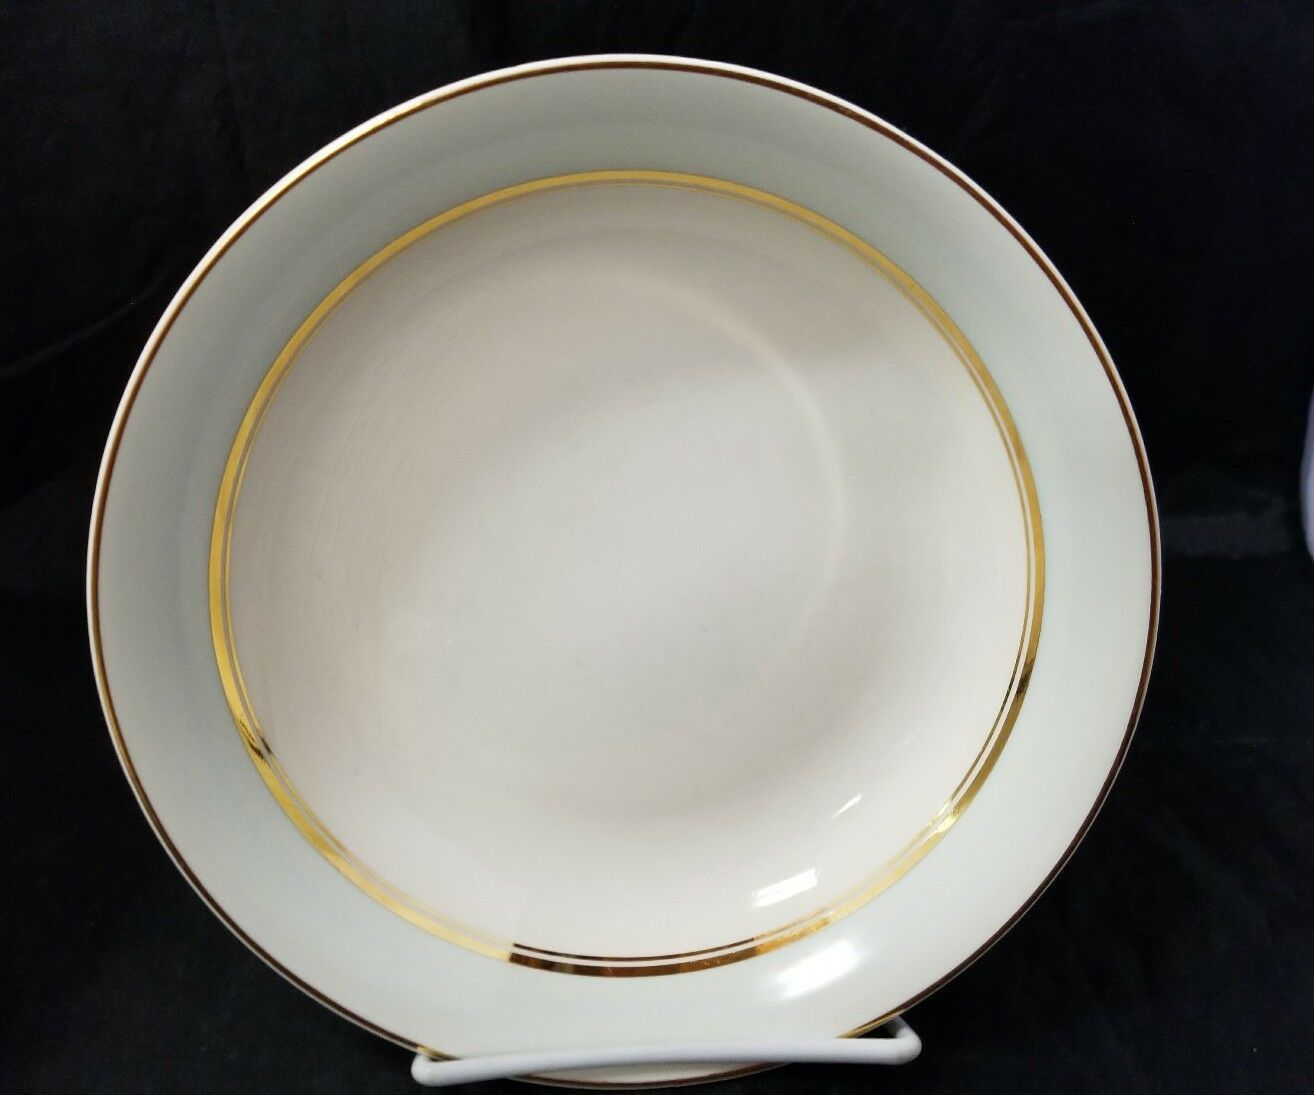 The French Saxon China Co Soup Salad Bowls Set of 4, 22kt Gold, Pottery Made USA image 3